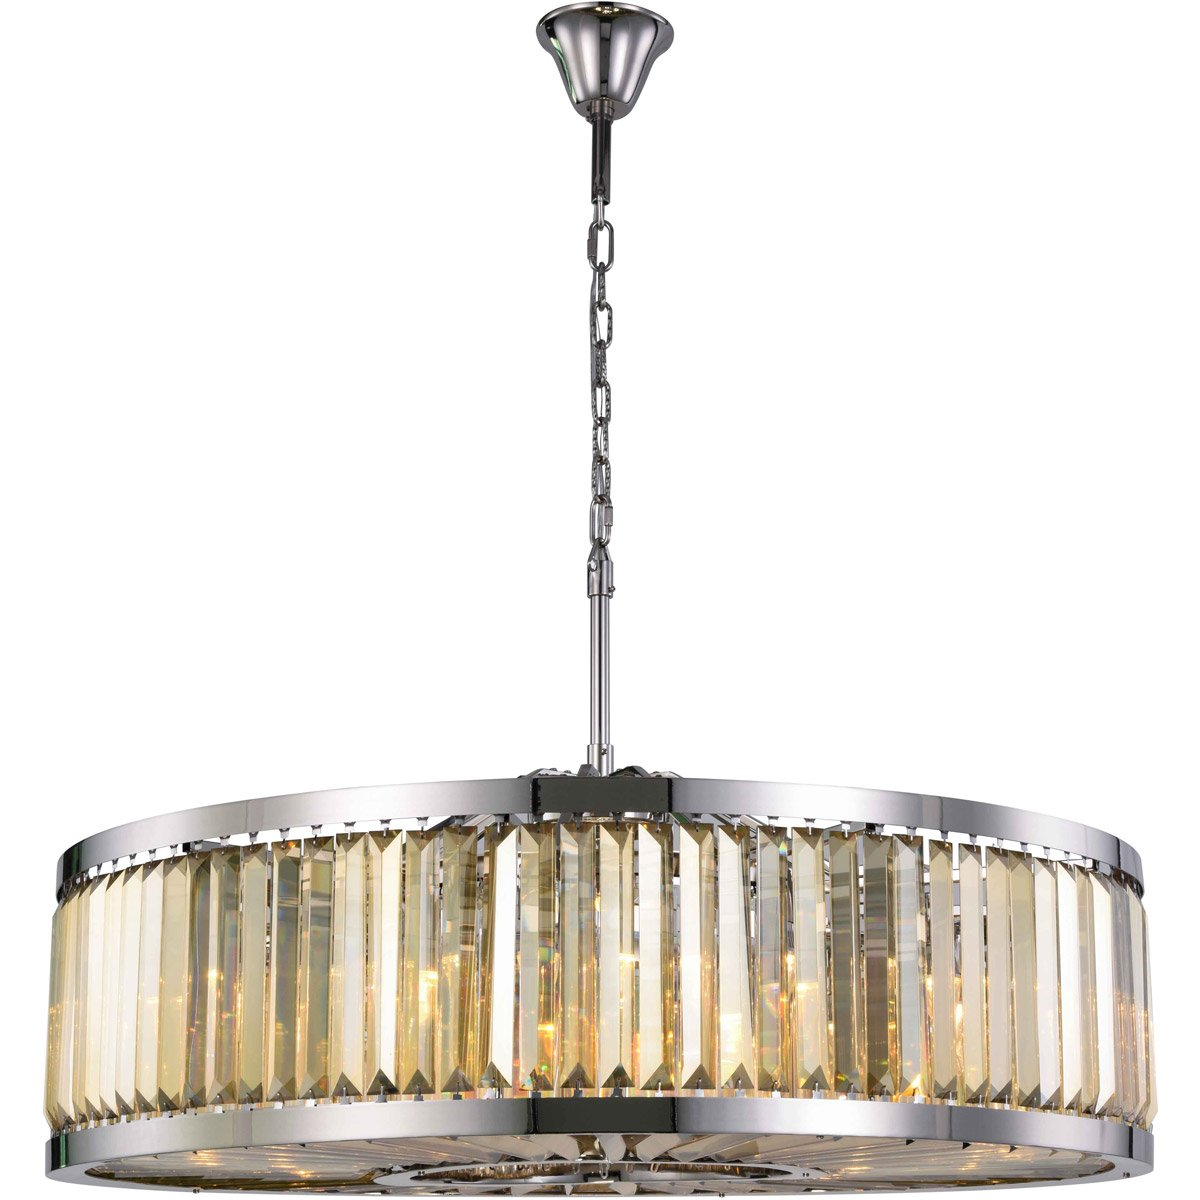 Chelsea 44 Crystal Pendant Chandelier With 10 Lights - Polished Nickel Finish And Smokey Crystal Chandelier